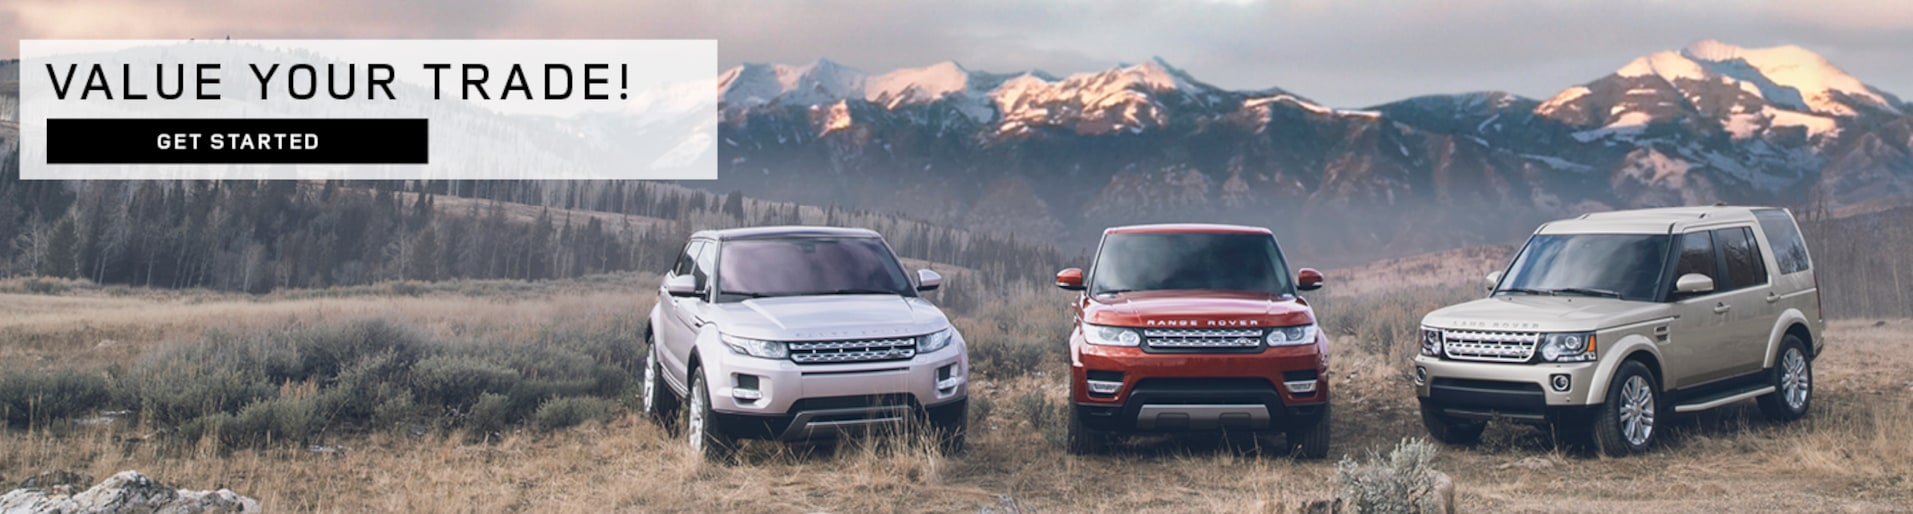 rover blog land america facility guests openroad s dealership americas showcase witness unveils unveiling luxury opening north suv dealerships at jaguar langley of rovers to f first the new landrover pace grand